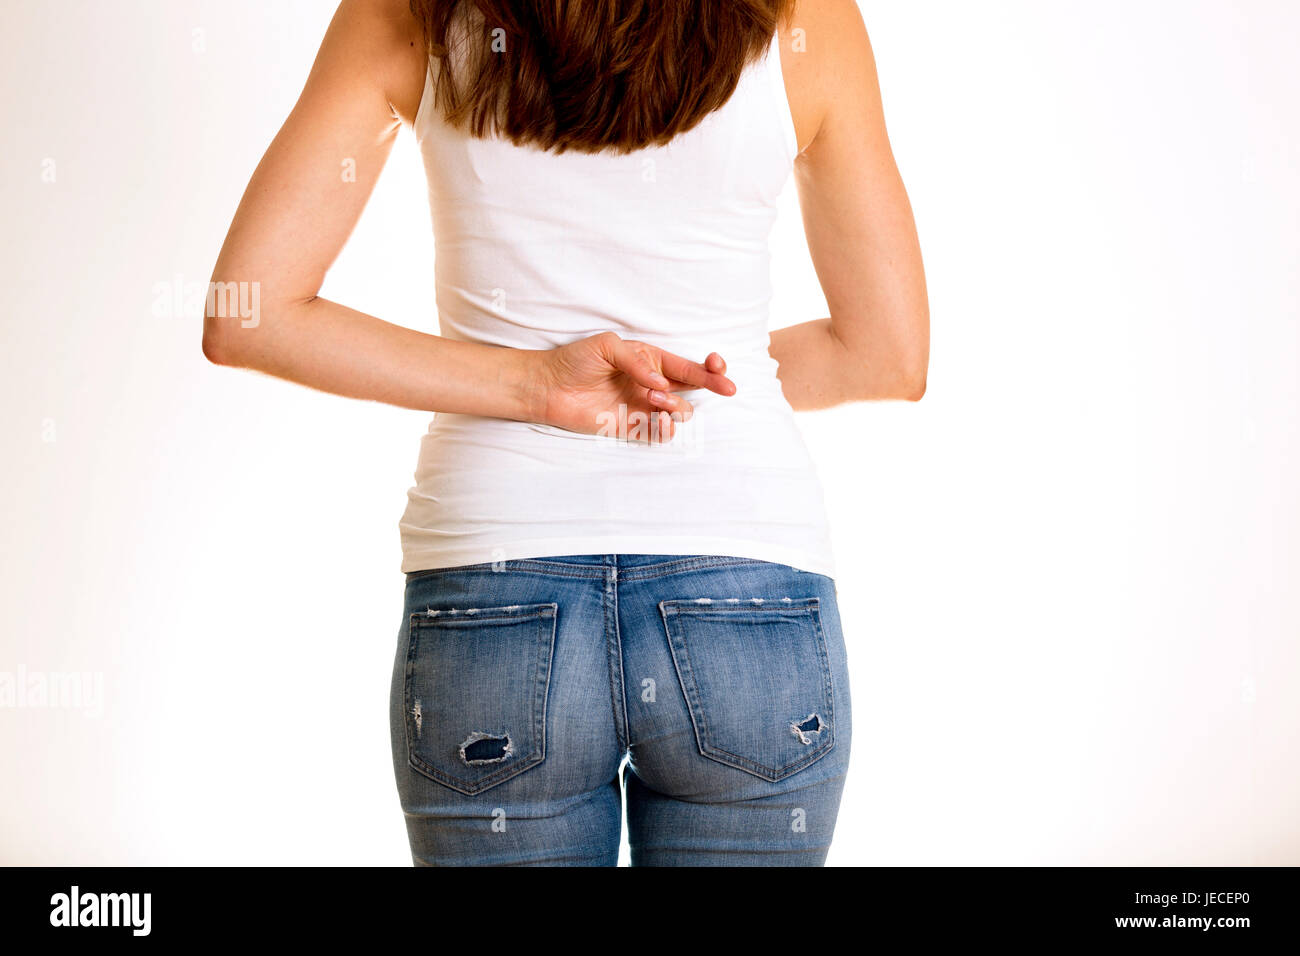 Dishonest woman telling lies, lying female holding fingers crossed behind her back - Stock Image